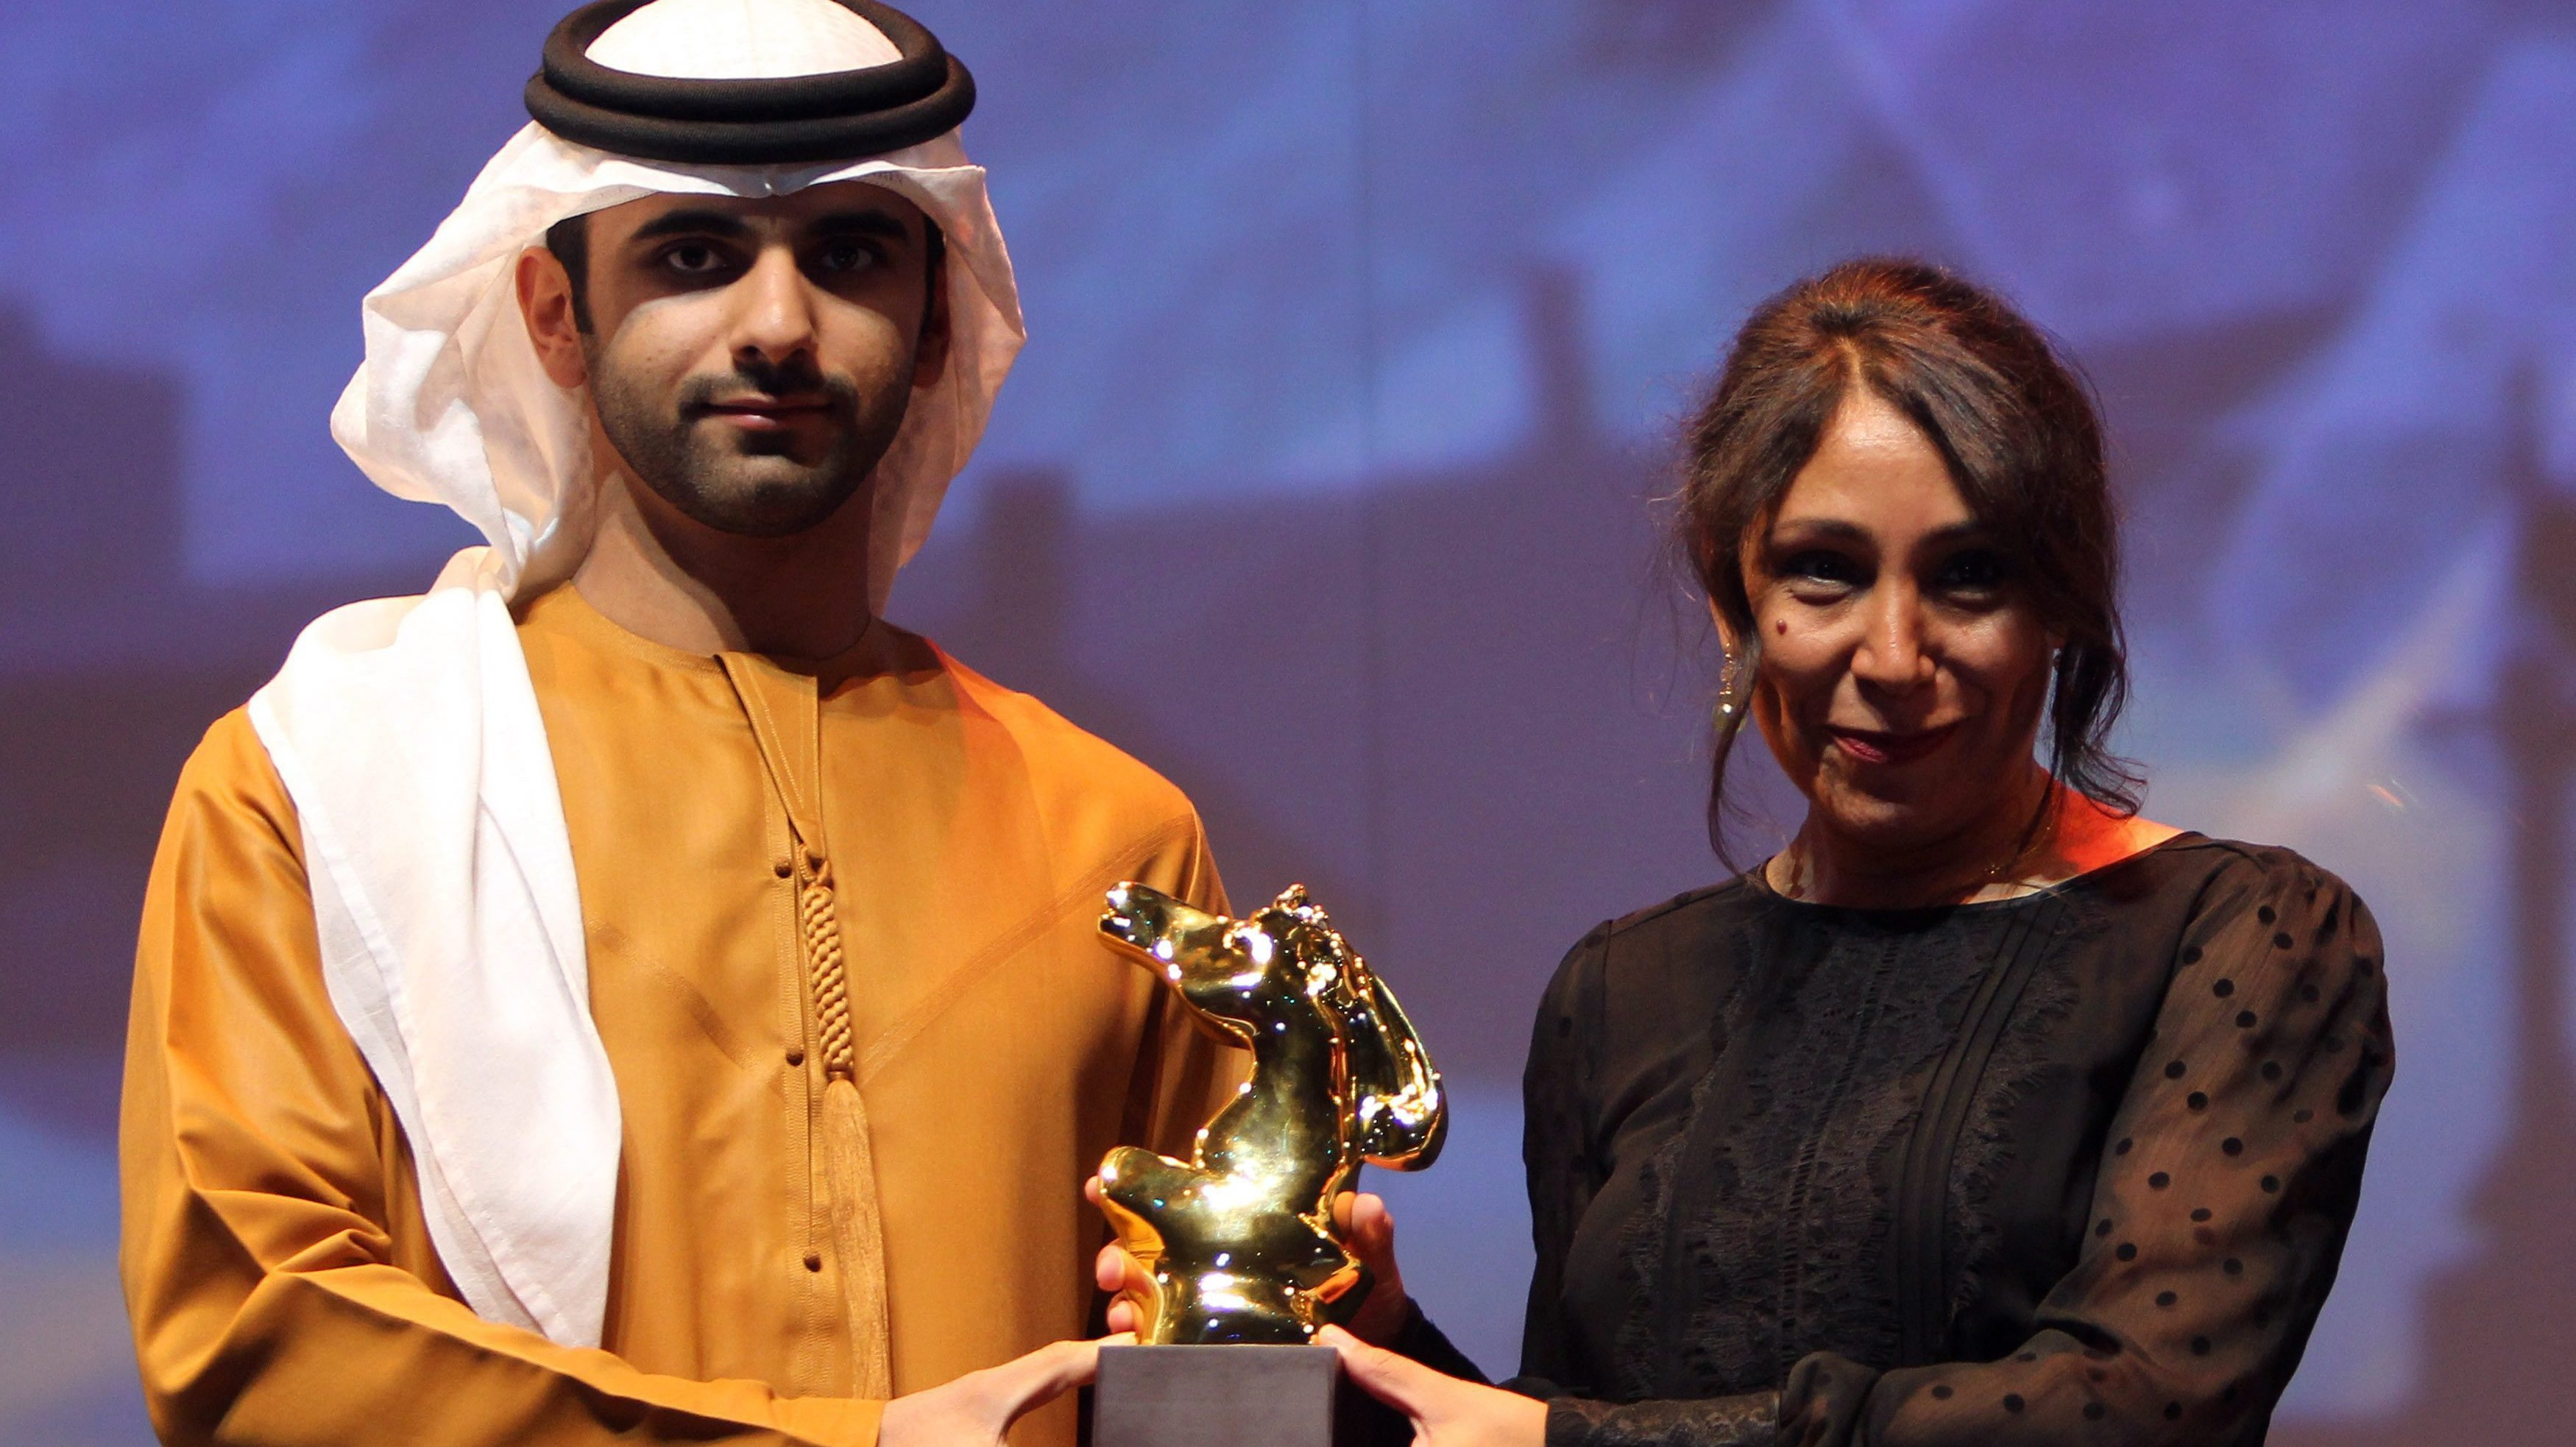 The Challenges Of Making A Film In Saudi Arabia